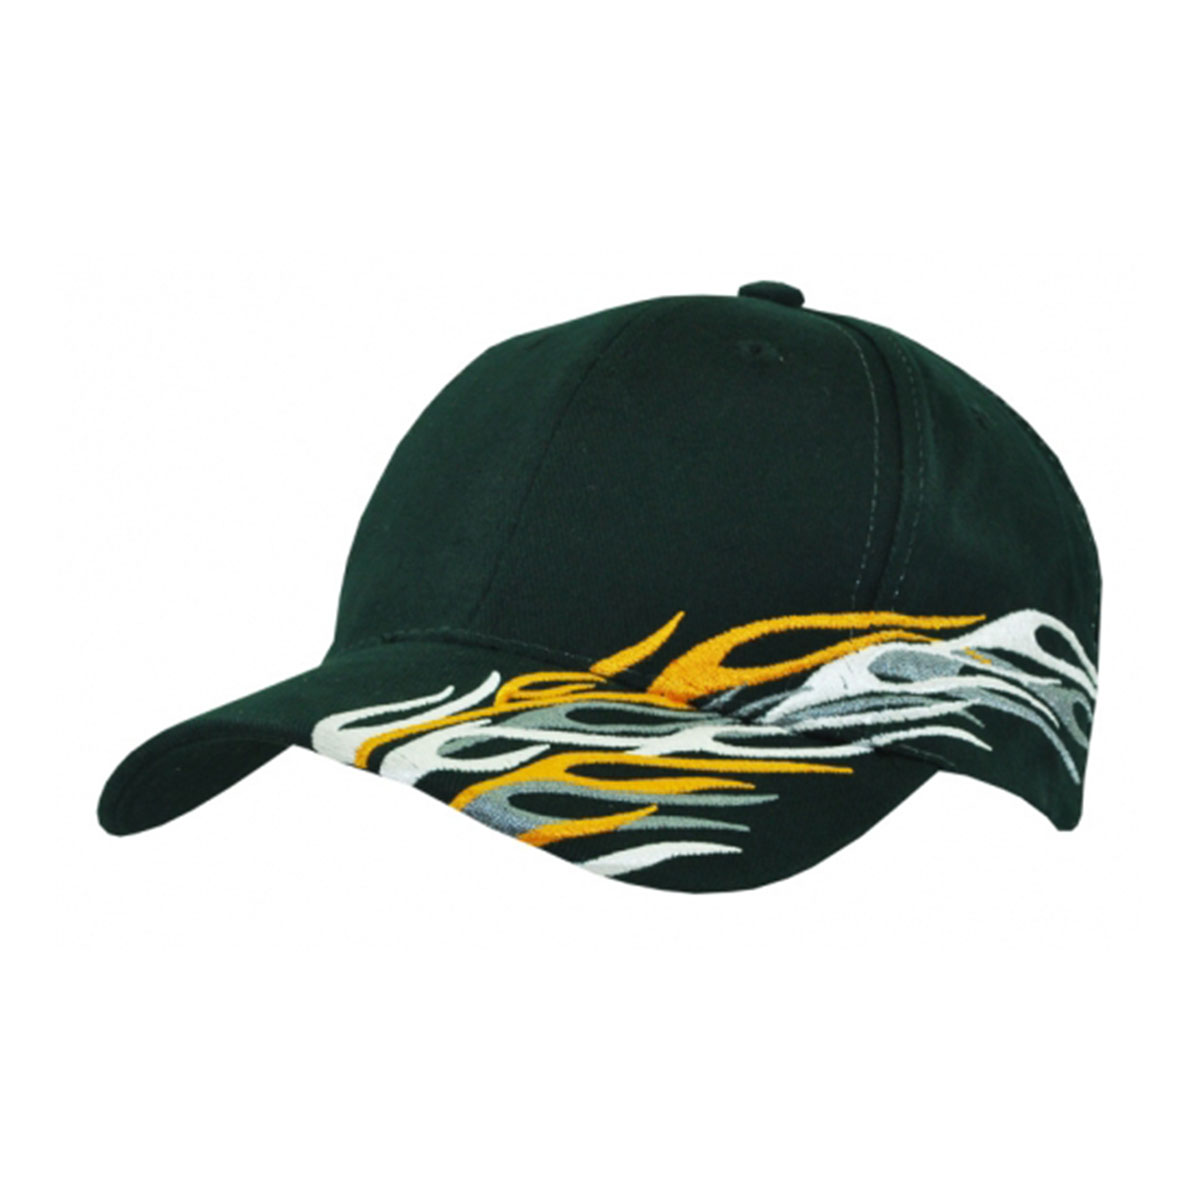 Cyclone Cap-Bottle / White / Grey / Gold